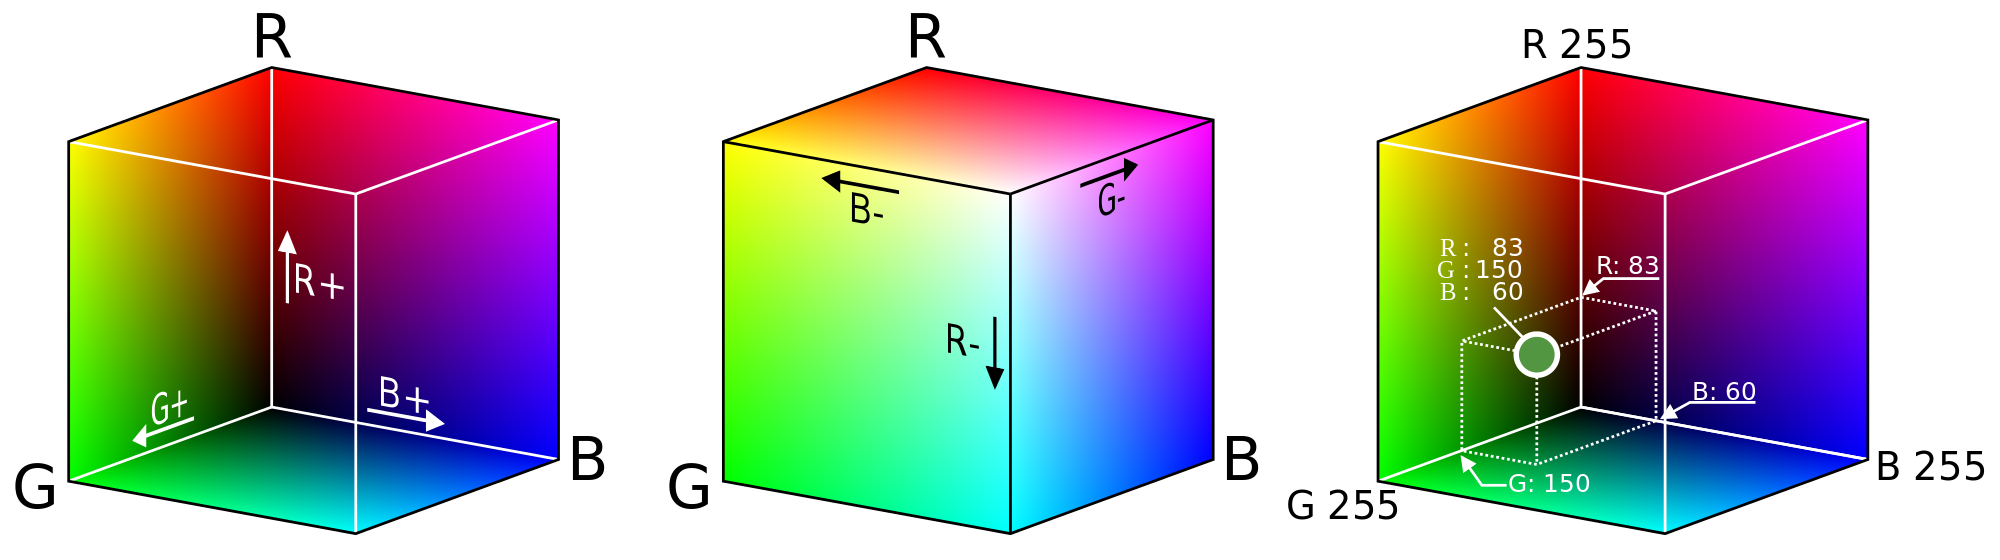 Color svg rgb. File cube wikimedia commons